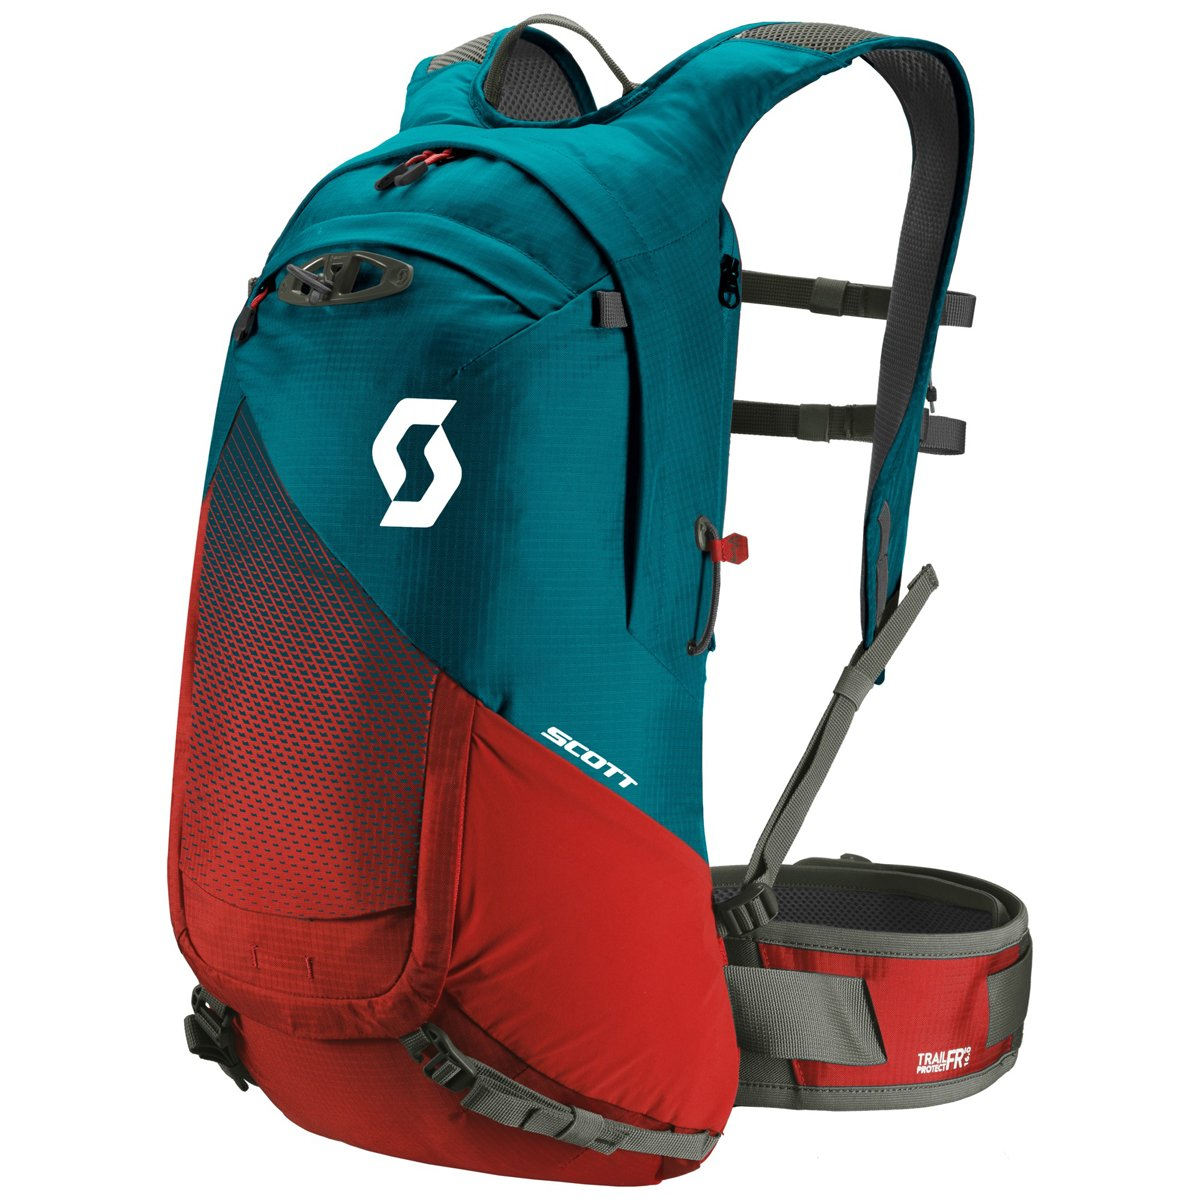 Scott Pack Trail Protect fr Légion \ '12Fiery Red/Blue